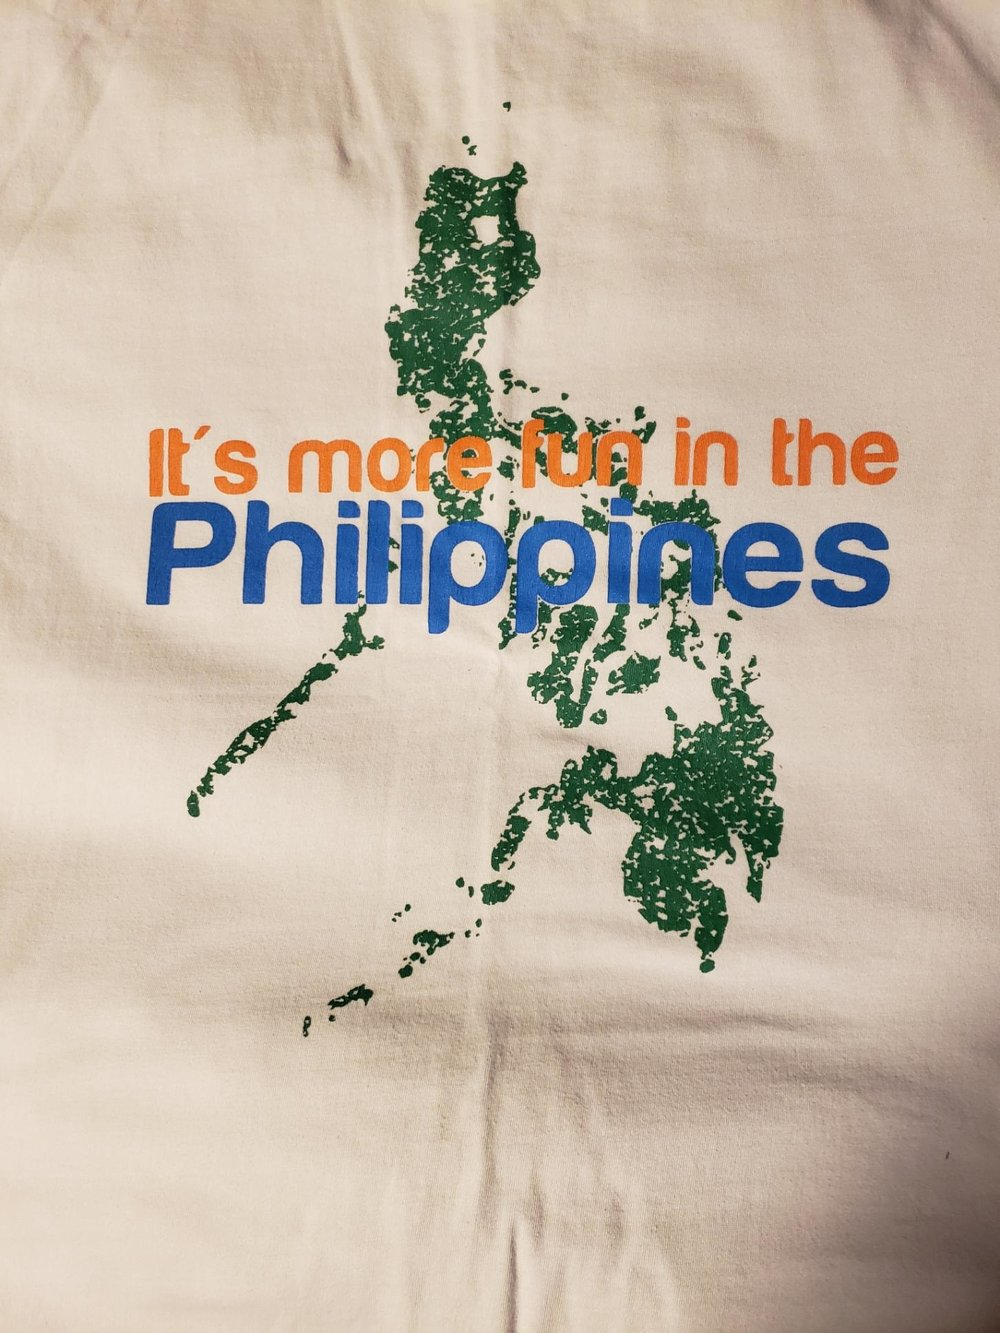 As promised from the podcast here is Jeff M's tee, true to the country tourism slogan!